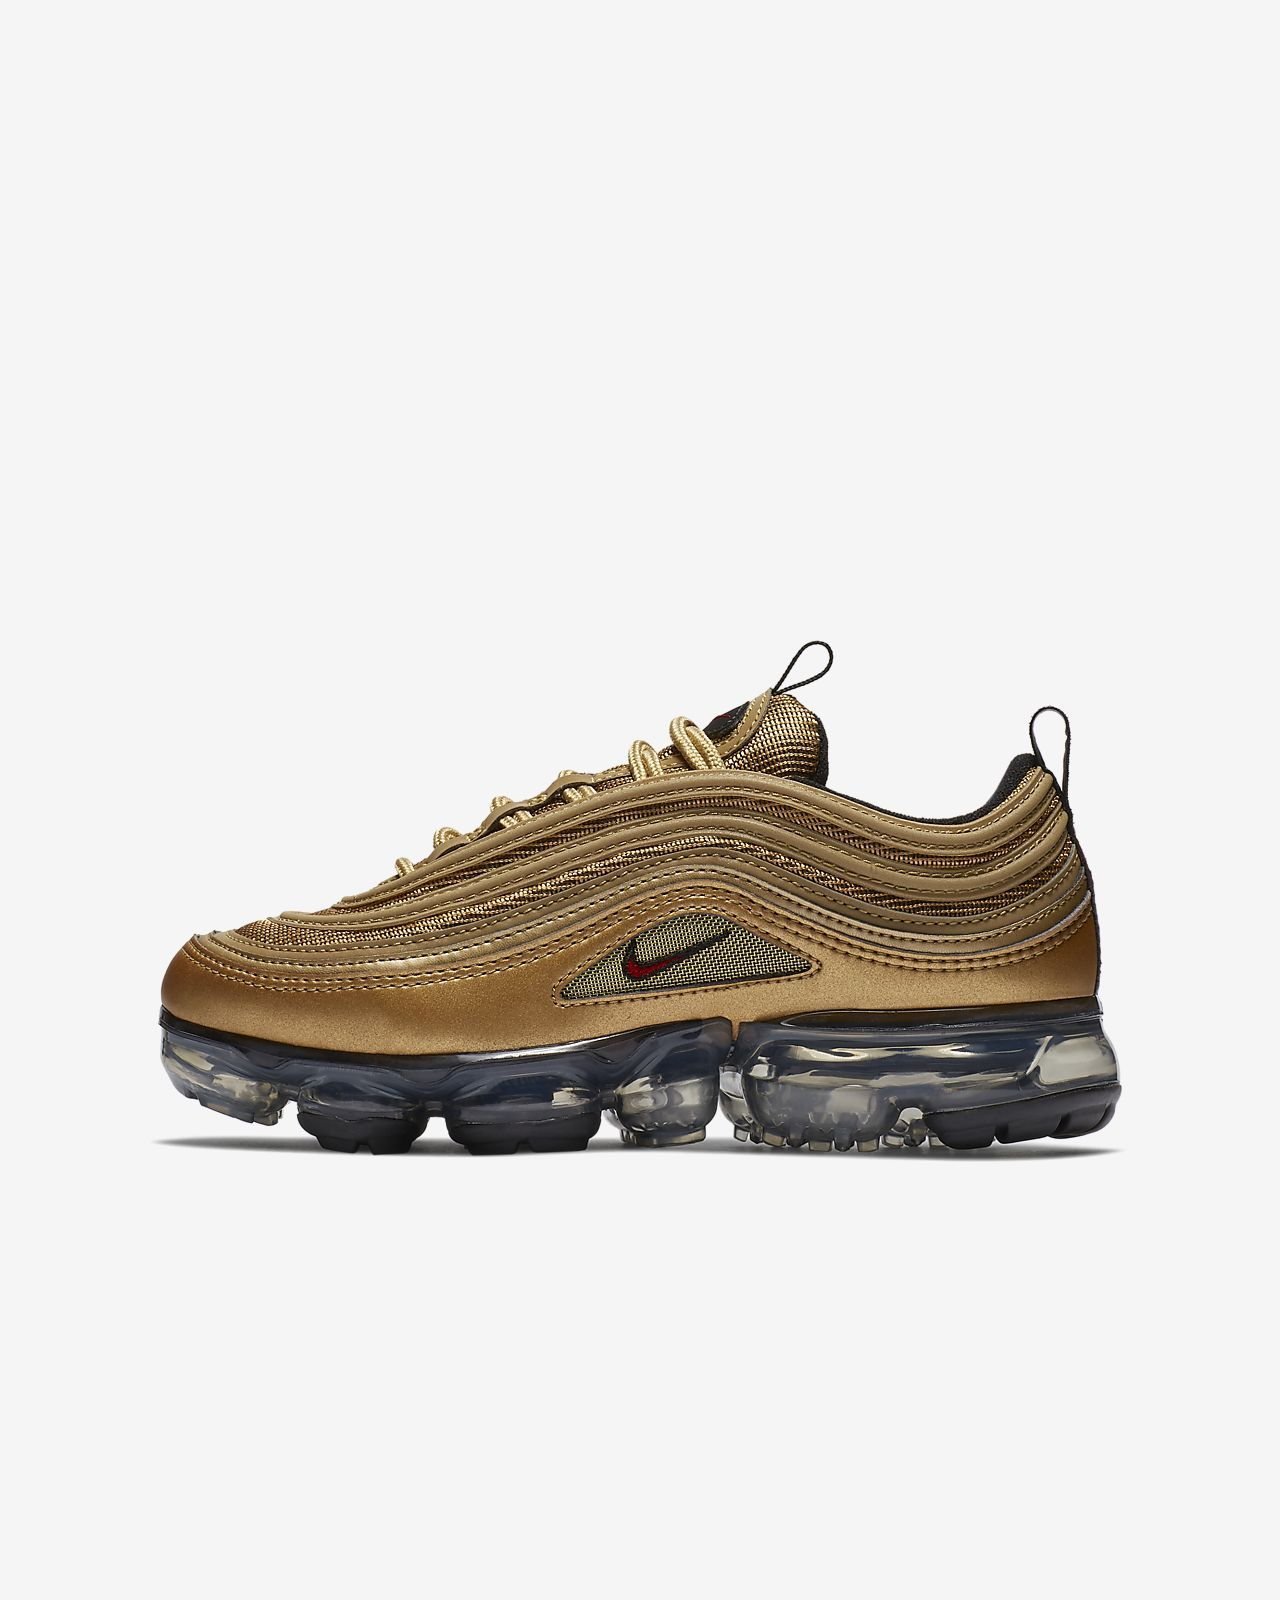 separation shoes 0b2a7 56eb8 Big Kids  Nike Air VaporMax 97 Shoe Metallic Gold Black White Varsity Red  Style  AQ2657-700